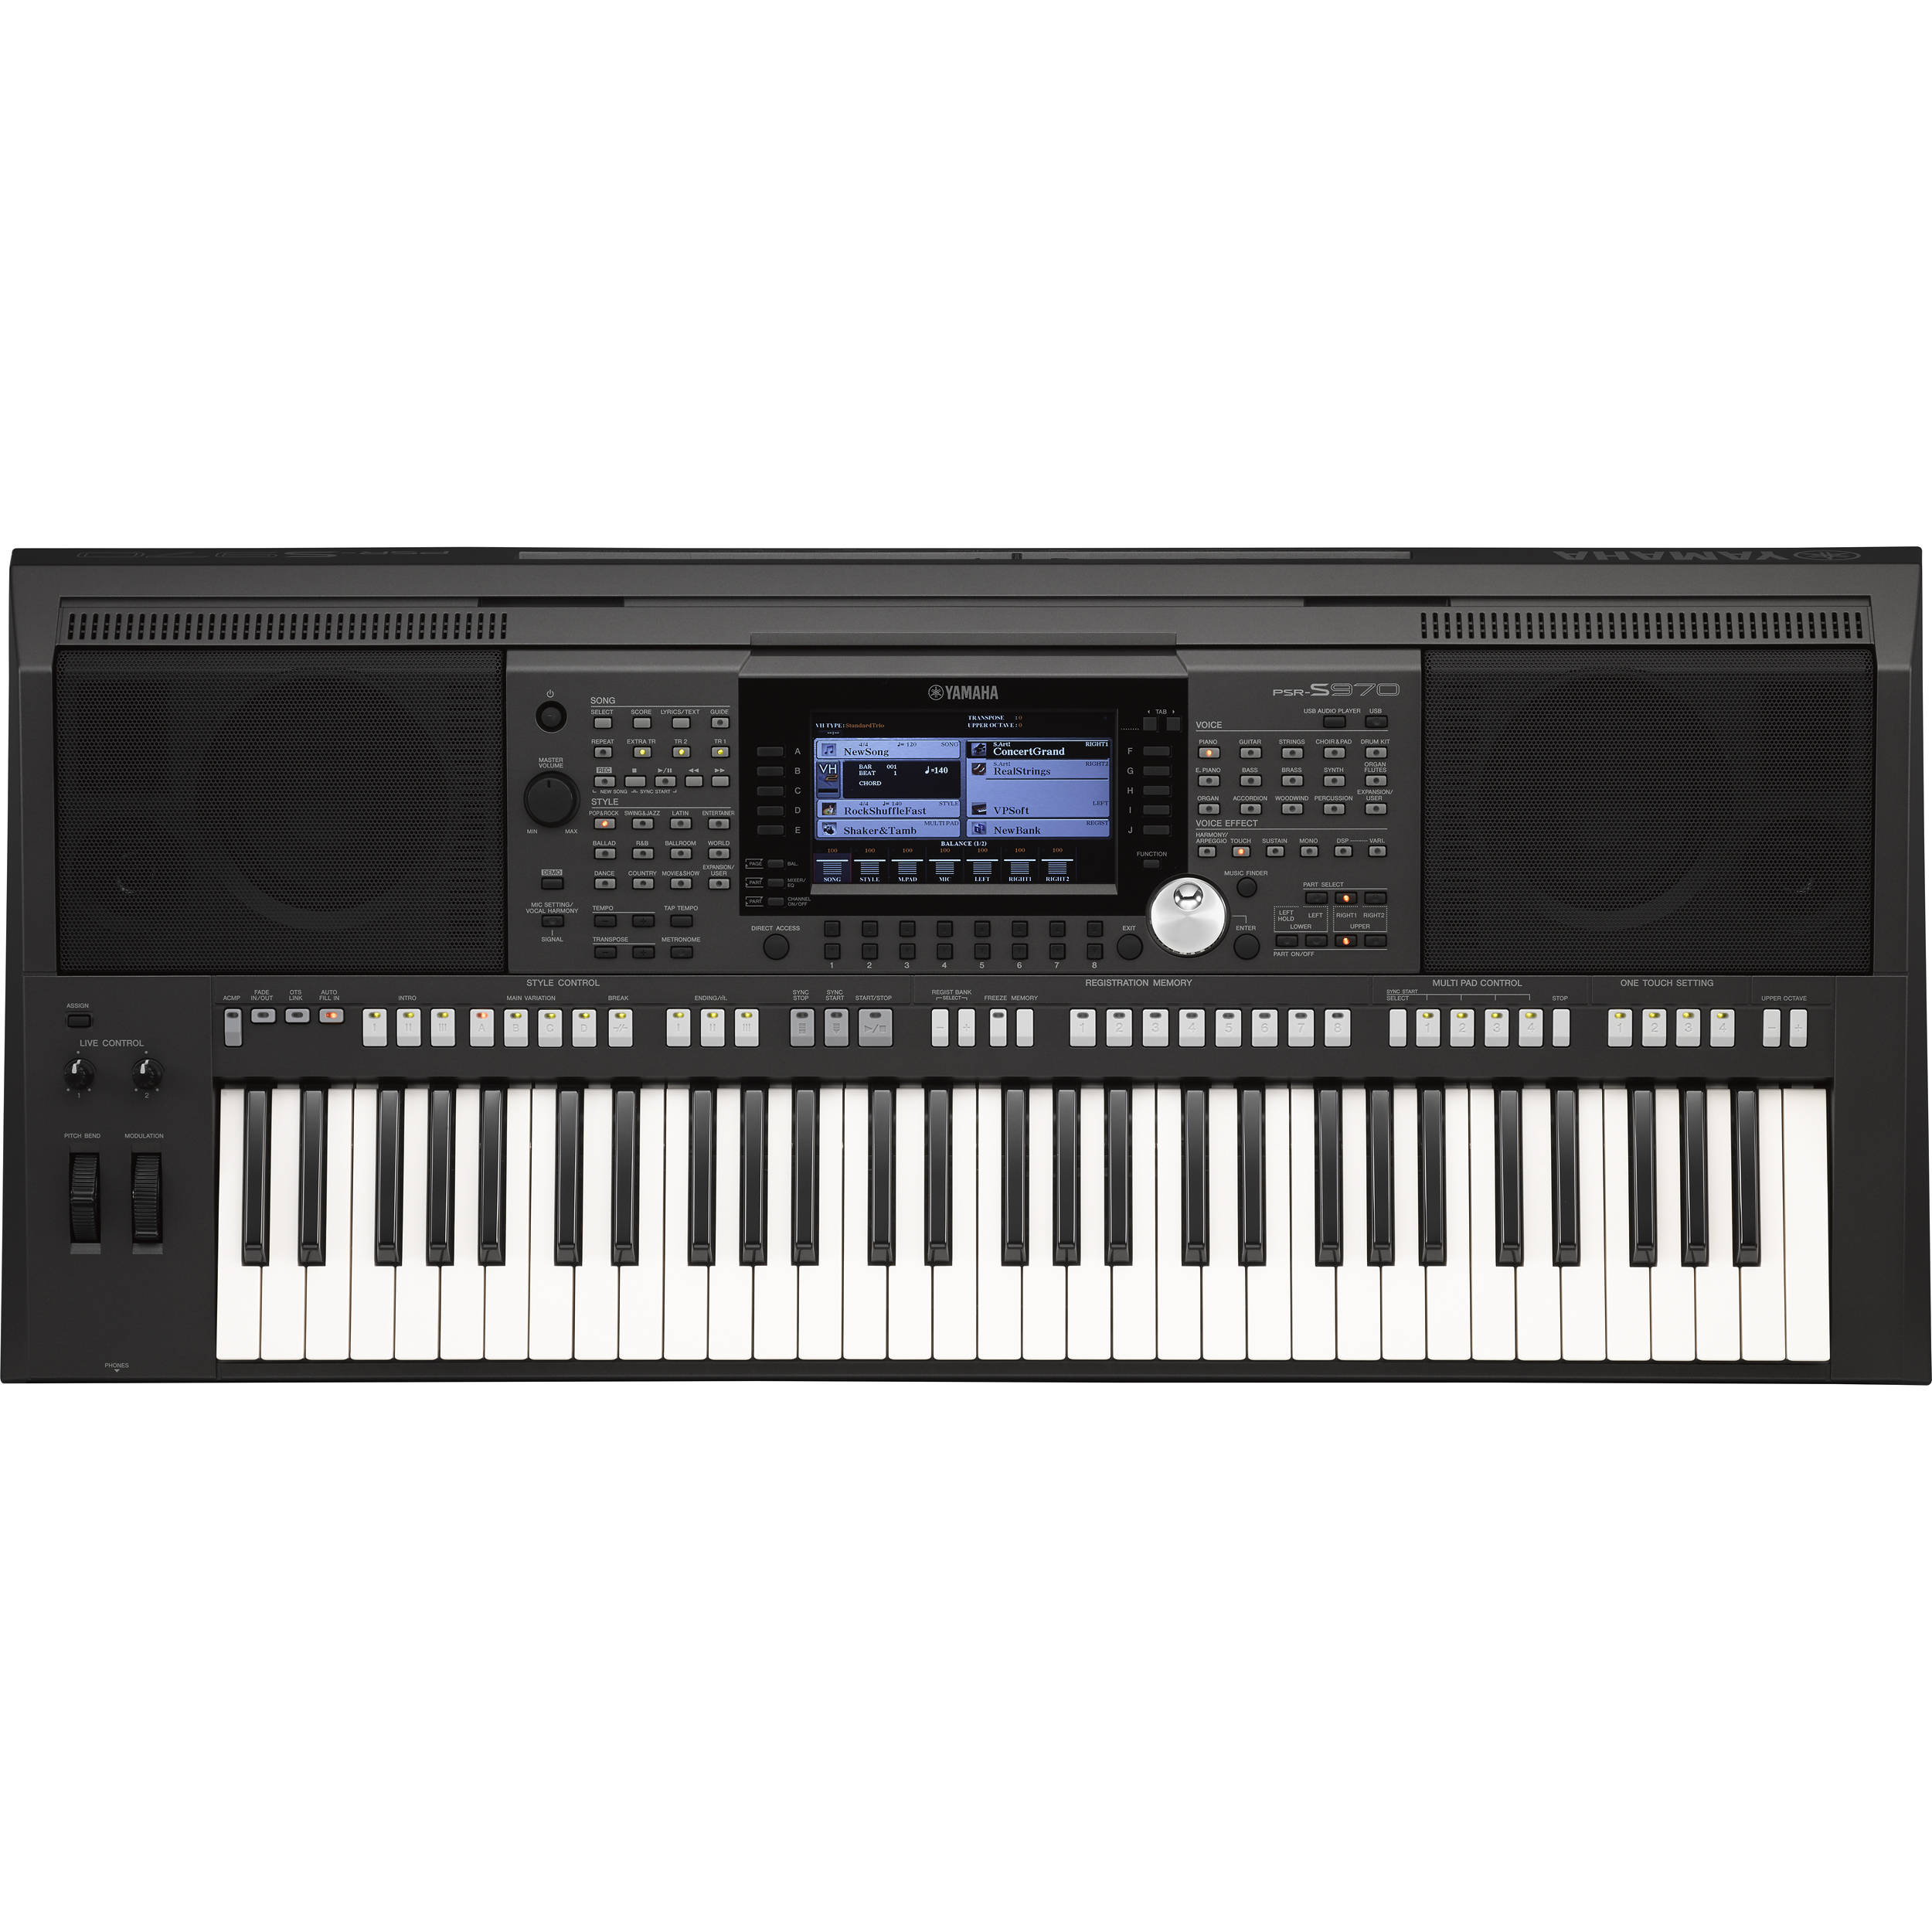 Yamaha psr s970 arranger workstation psrs970 b h photo video for Yamaha professional keyboard price